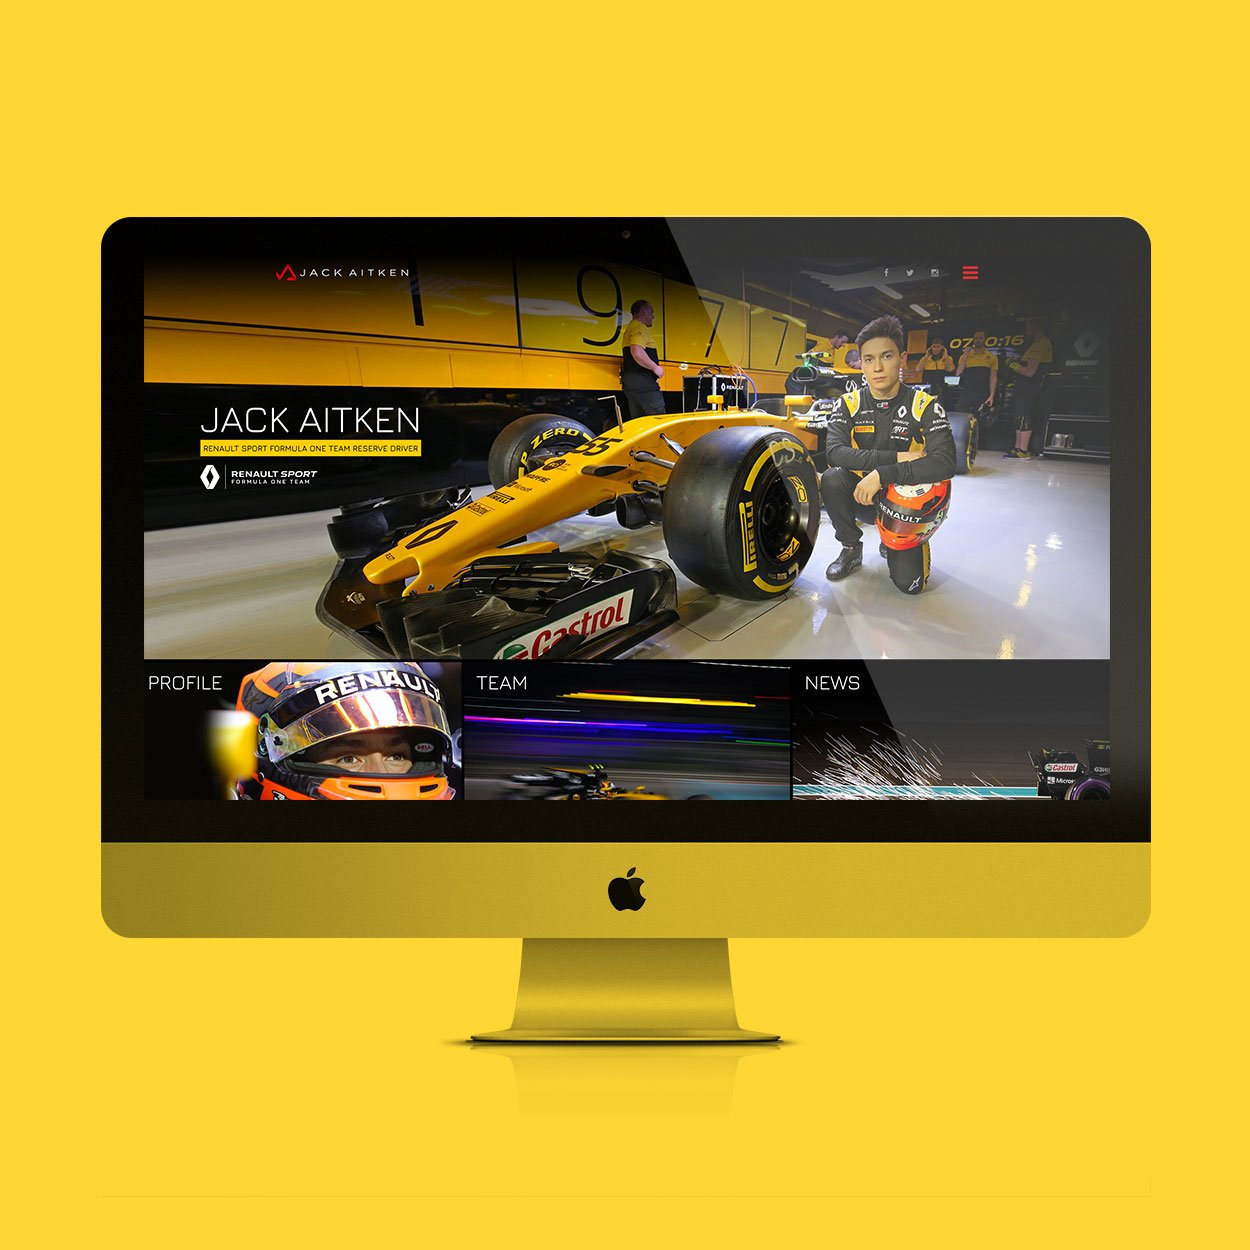 Jack Aitken website design